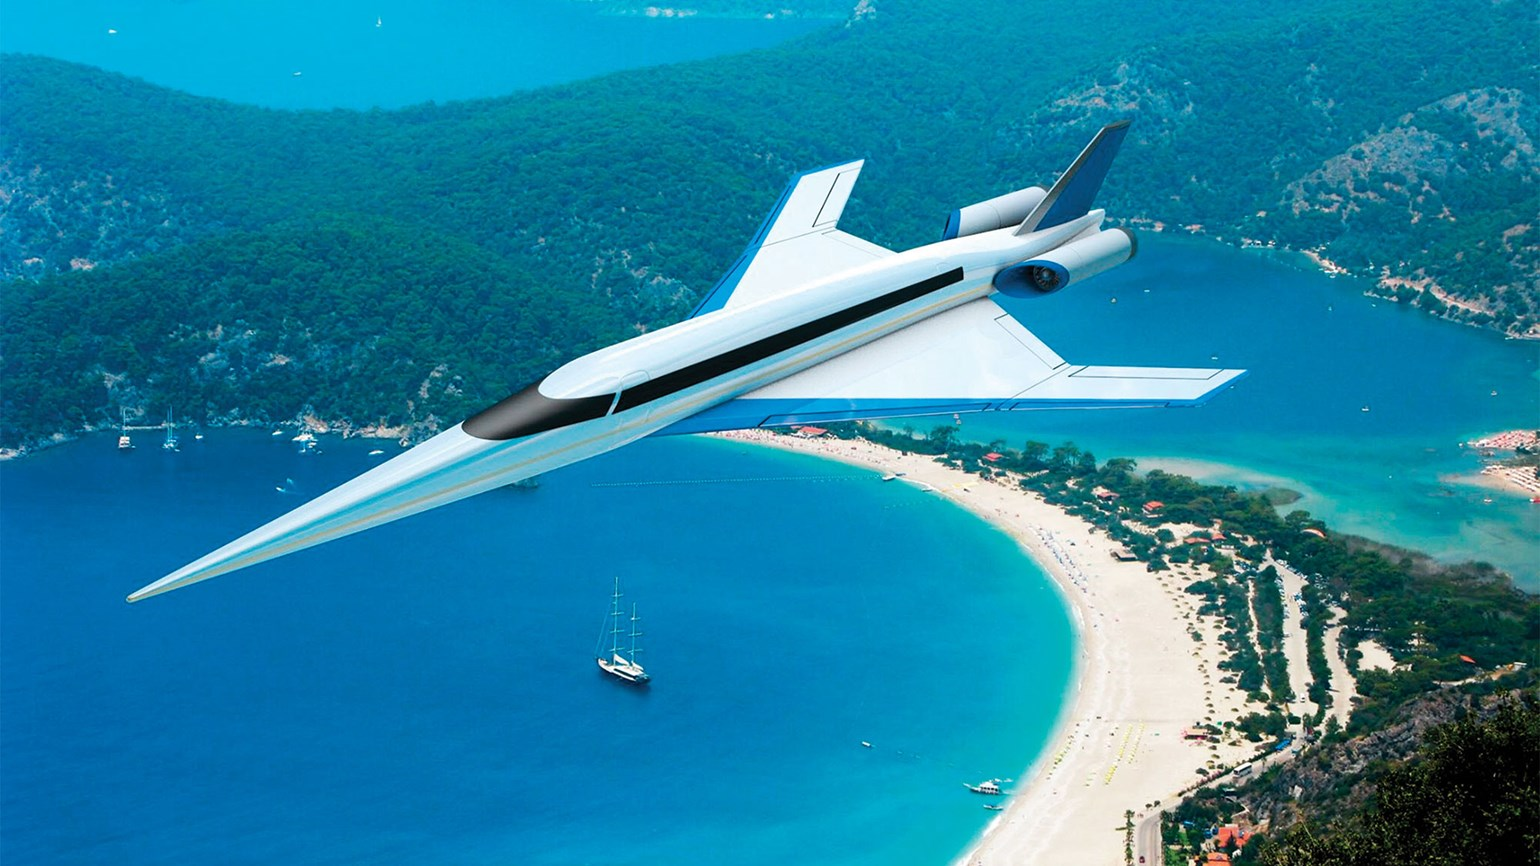 Lawmakers want FAA to review rules for supersonic aircraft